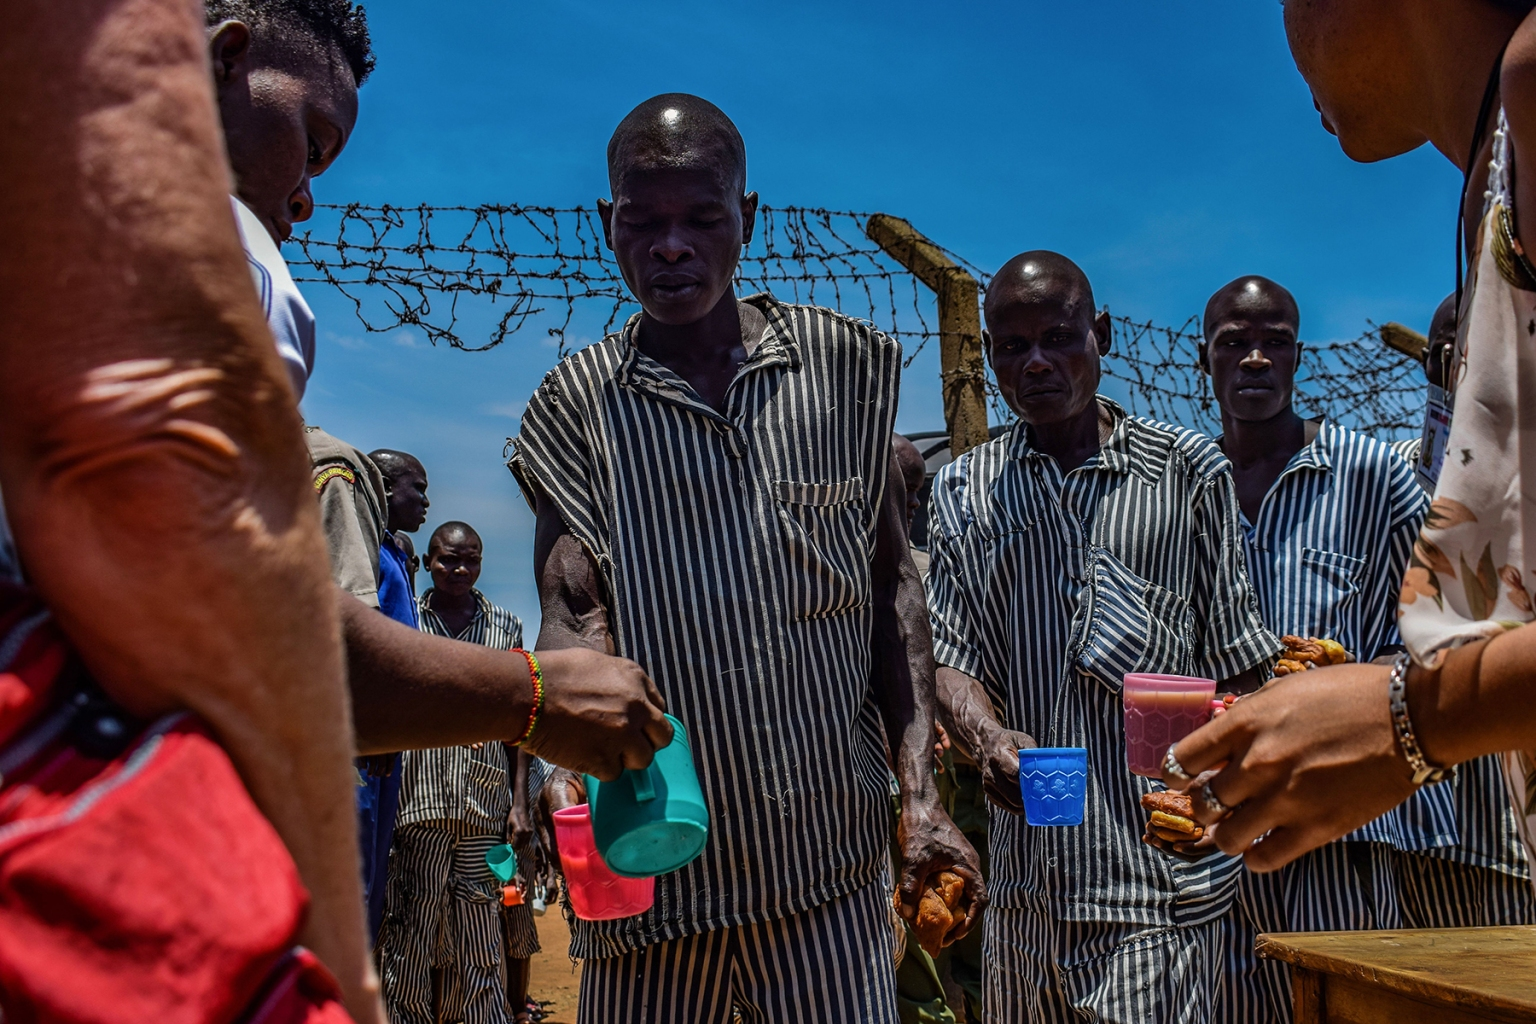 Inmates stand in a queue as they are served tea during a talent show at the medium security section of Kodiaga Prison in Kisumu, Kenya, on March 31. BRIAN ONGORO/AFP/Getty Images